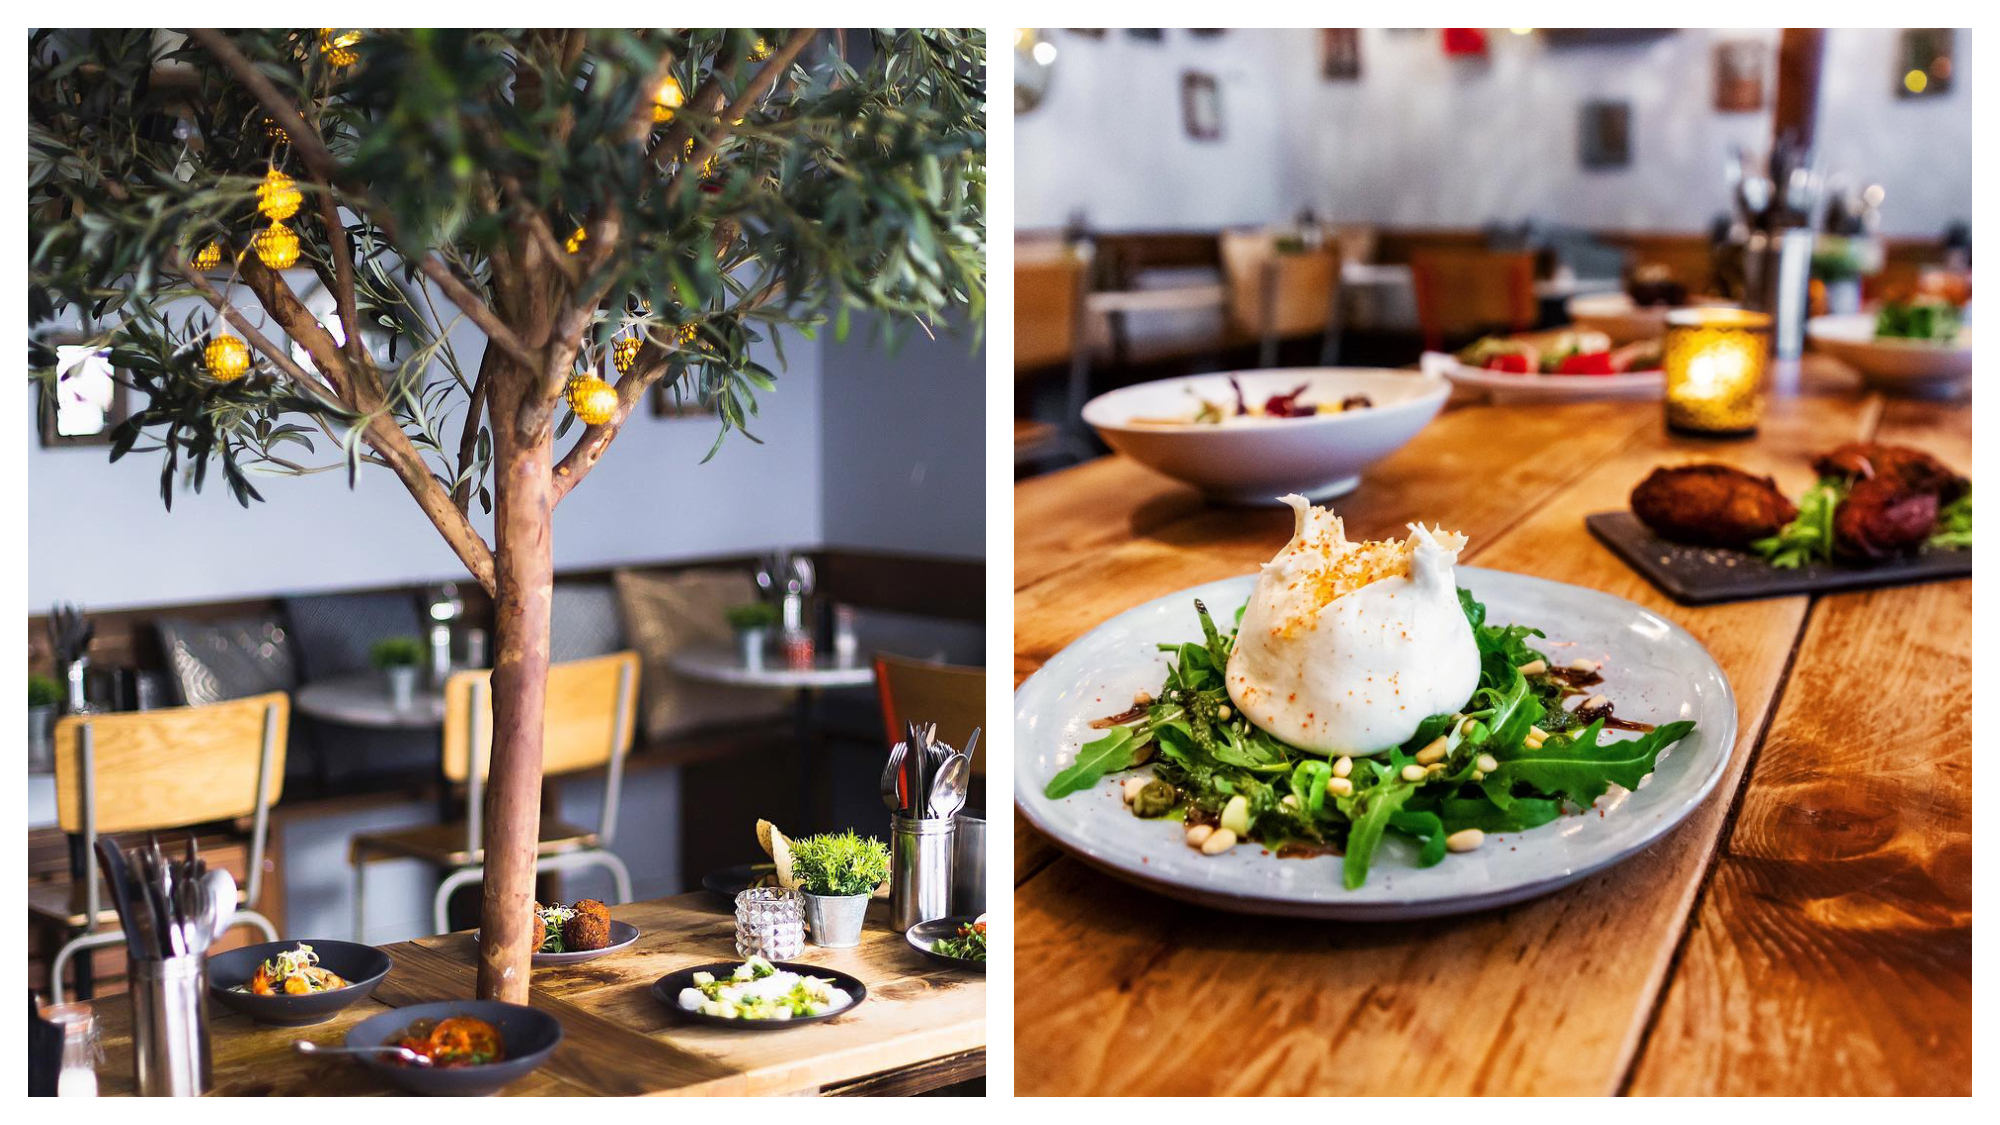 On left: The renowned olive tree at La Mangerie in Paris' Marais neighborhood invites diners to gather around for tapas. On right: A fresh green salad topped with pine nuts sits on the earthy, wooden farm table at La Mangerie in Paris' Marais neighborhood.